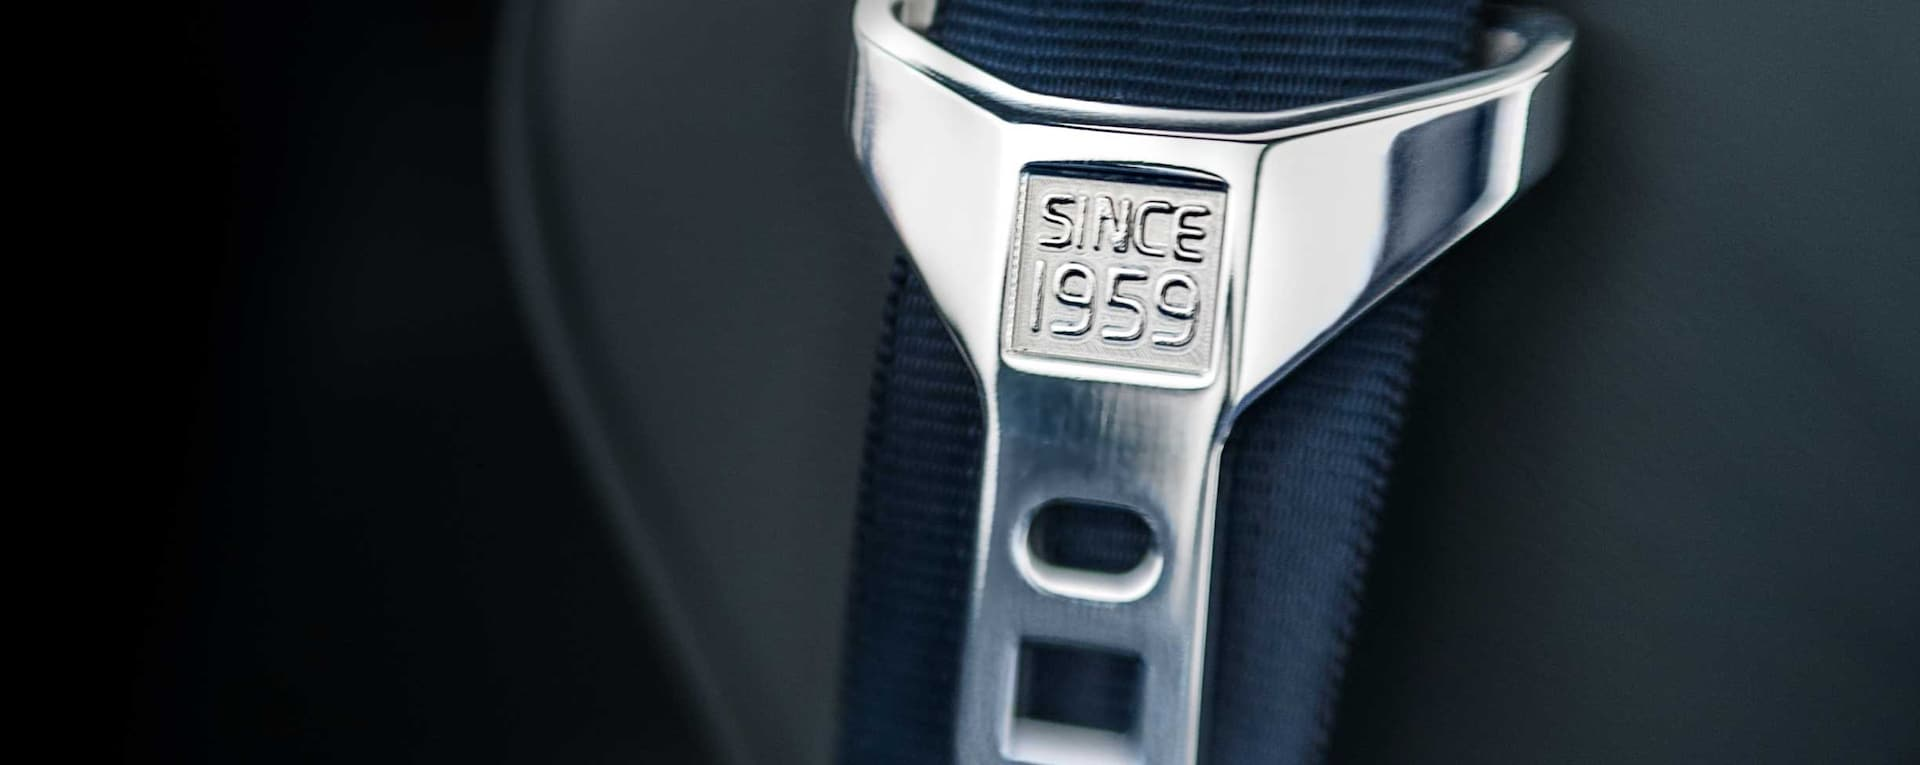 """A safety belt in grey with the text """"Since 1959"""" engraved on the buckle."""